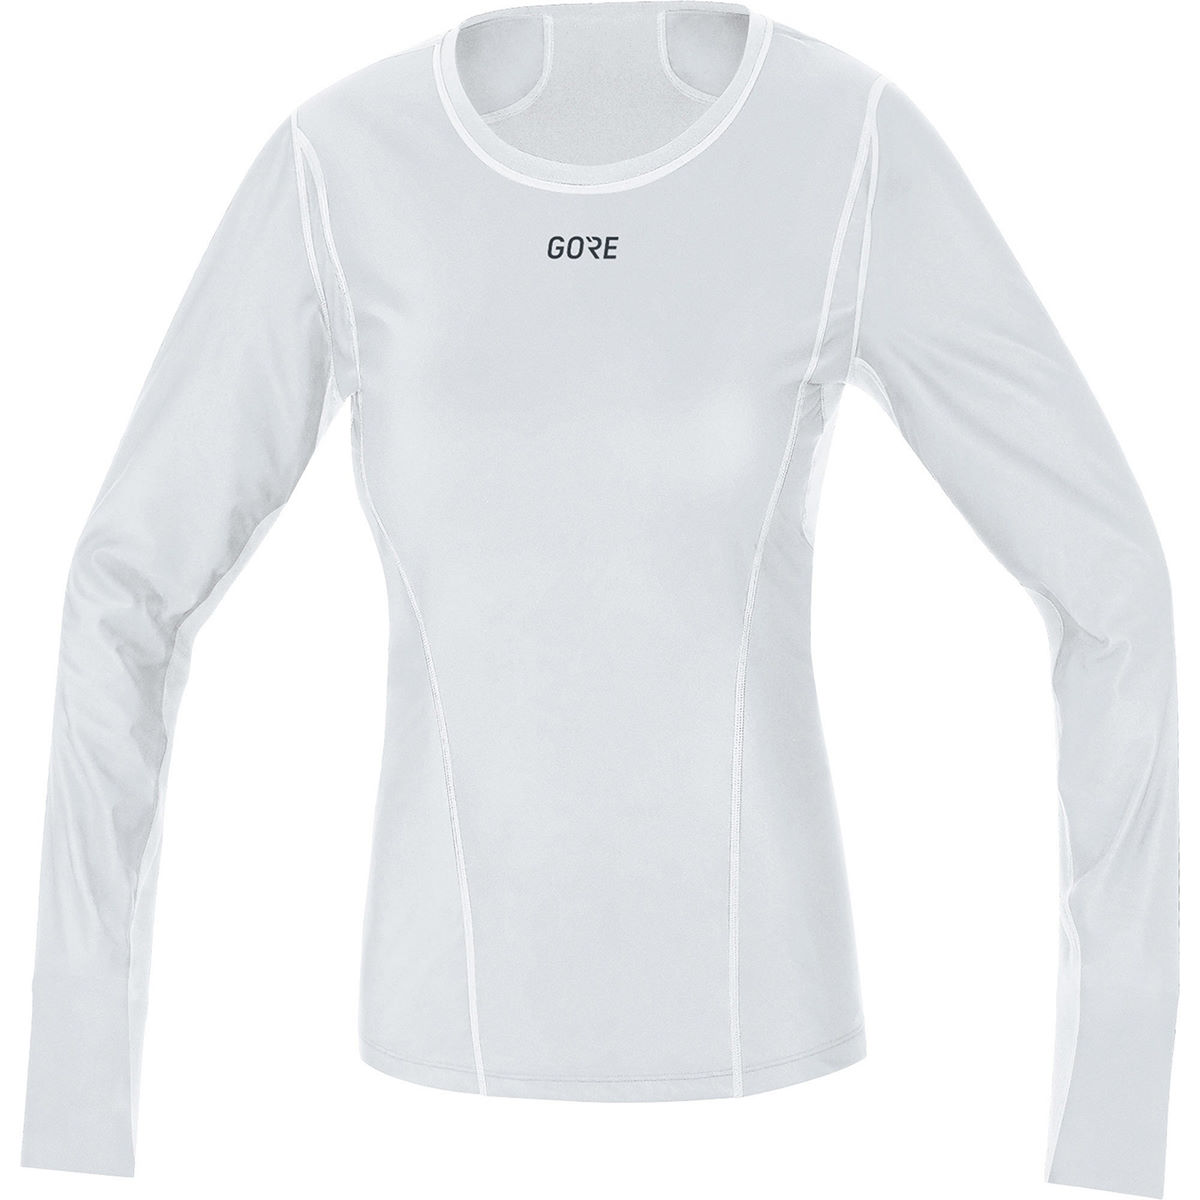 Gore Womens Windstopper Thermo Long Sleeve Base Layer - Camisetas interiores